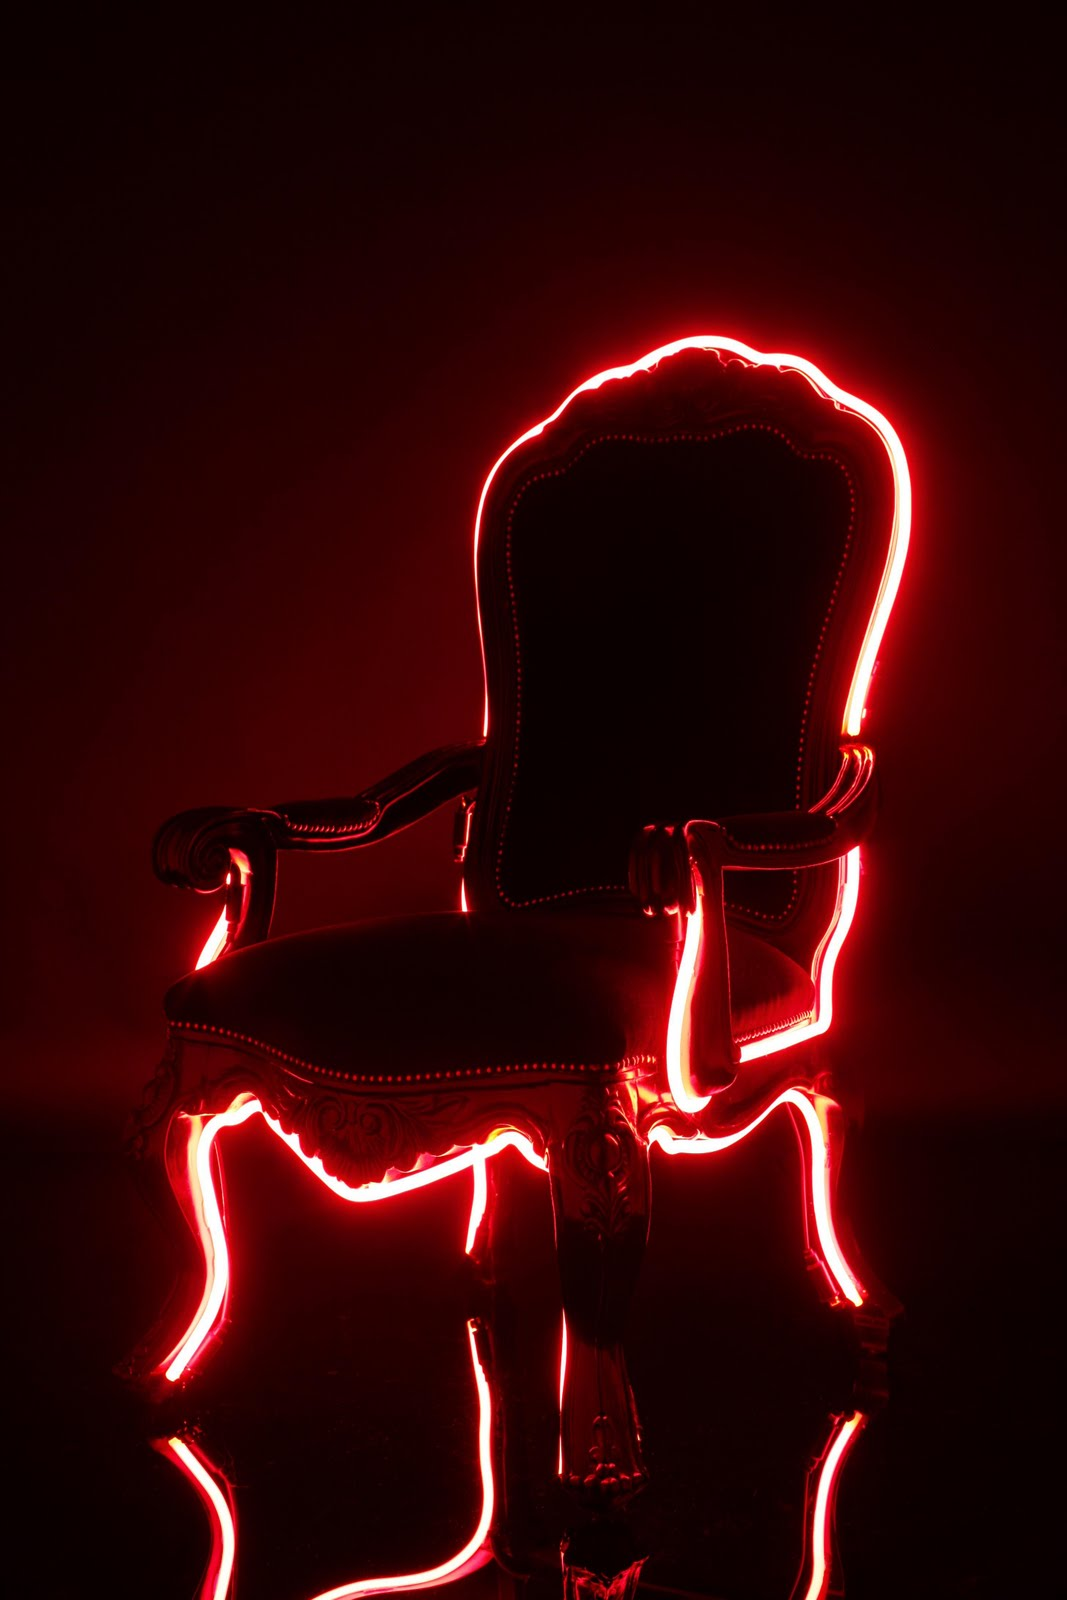 neon furniture. Re-discovered London Based Interior Designer, Lee Broom, And His 2007 Neo Neon Furniture Collection. Even Though The Collection Is Four Years Old, E